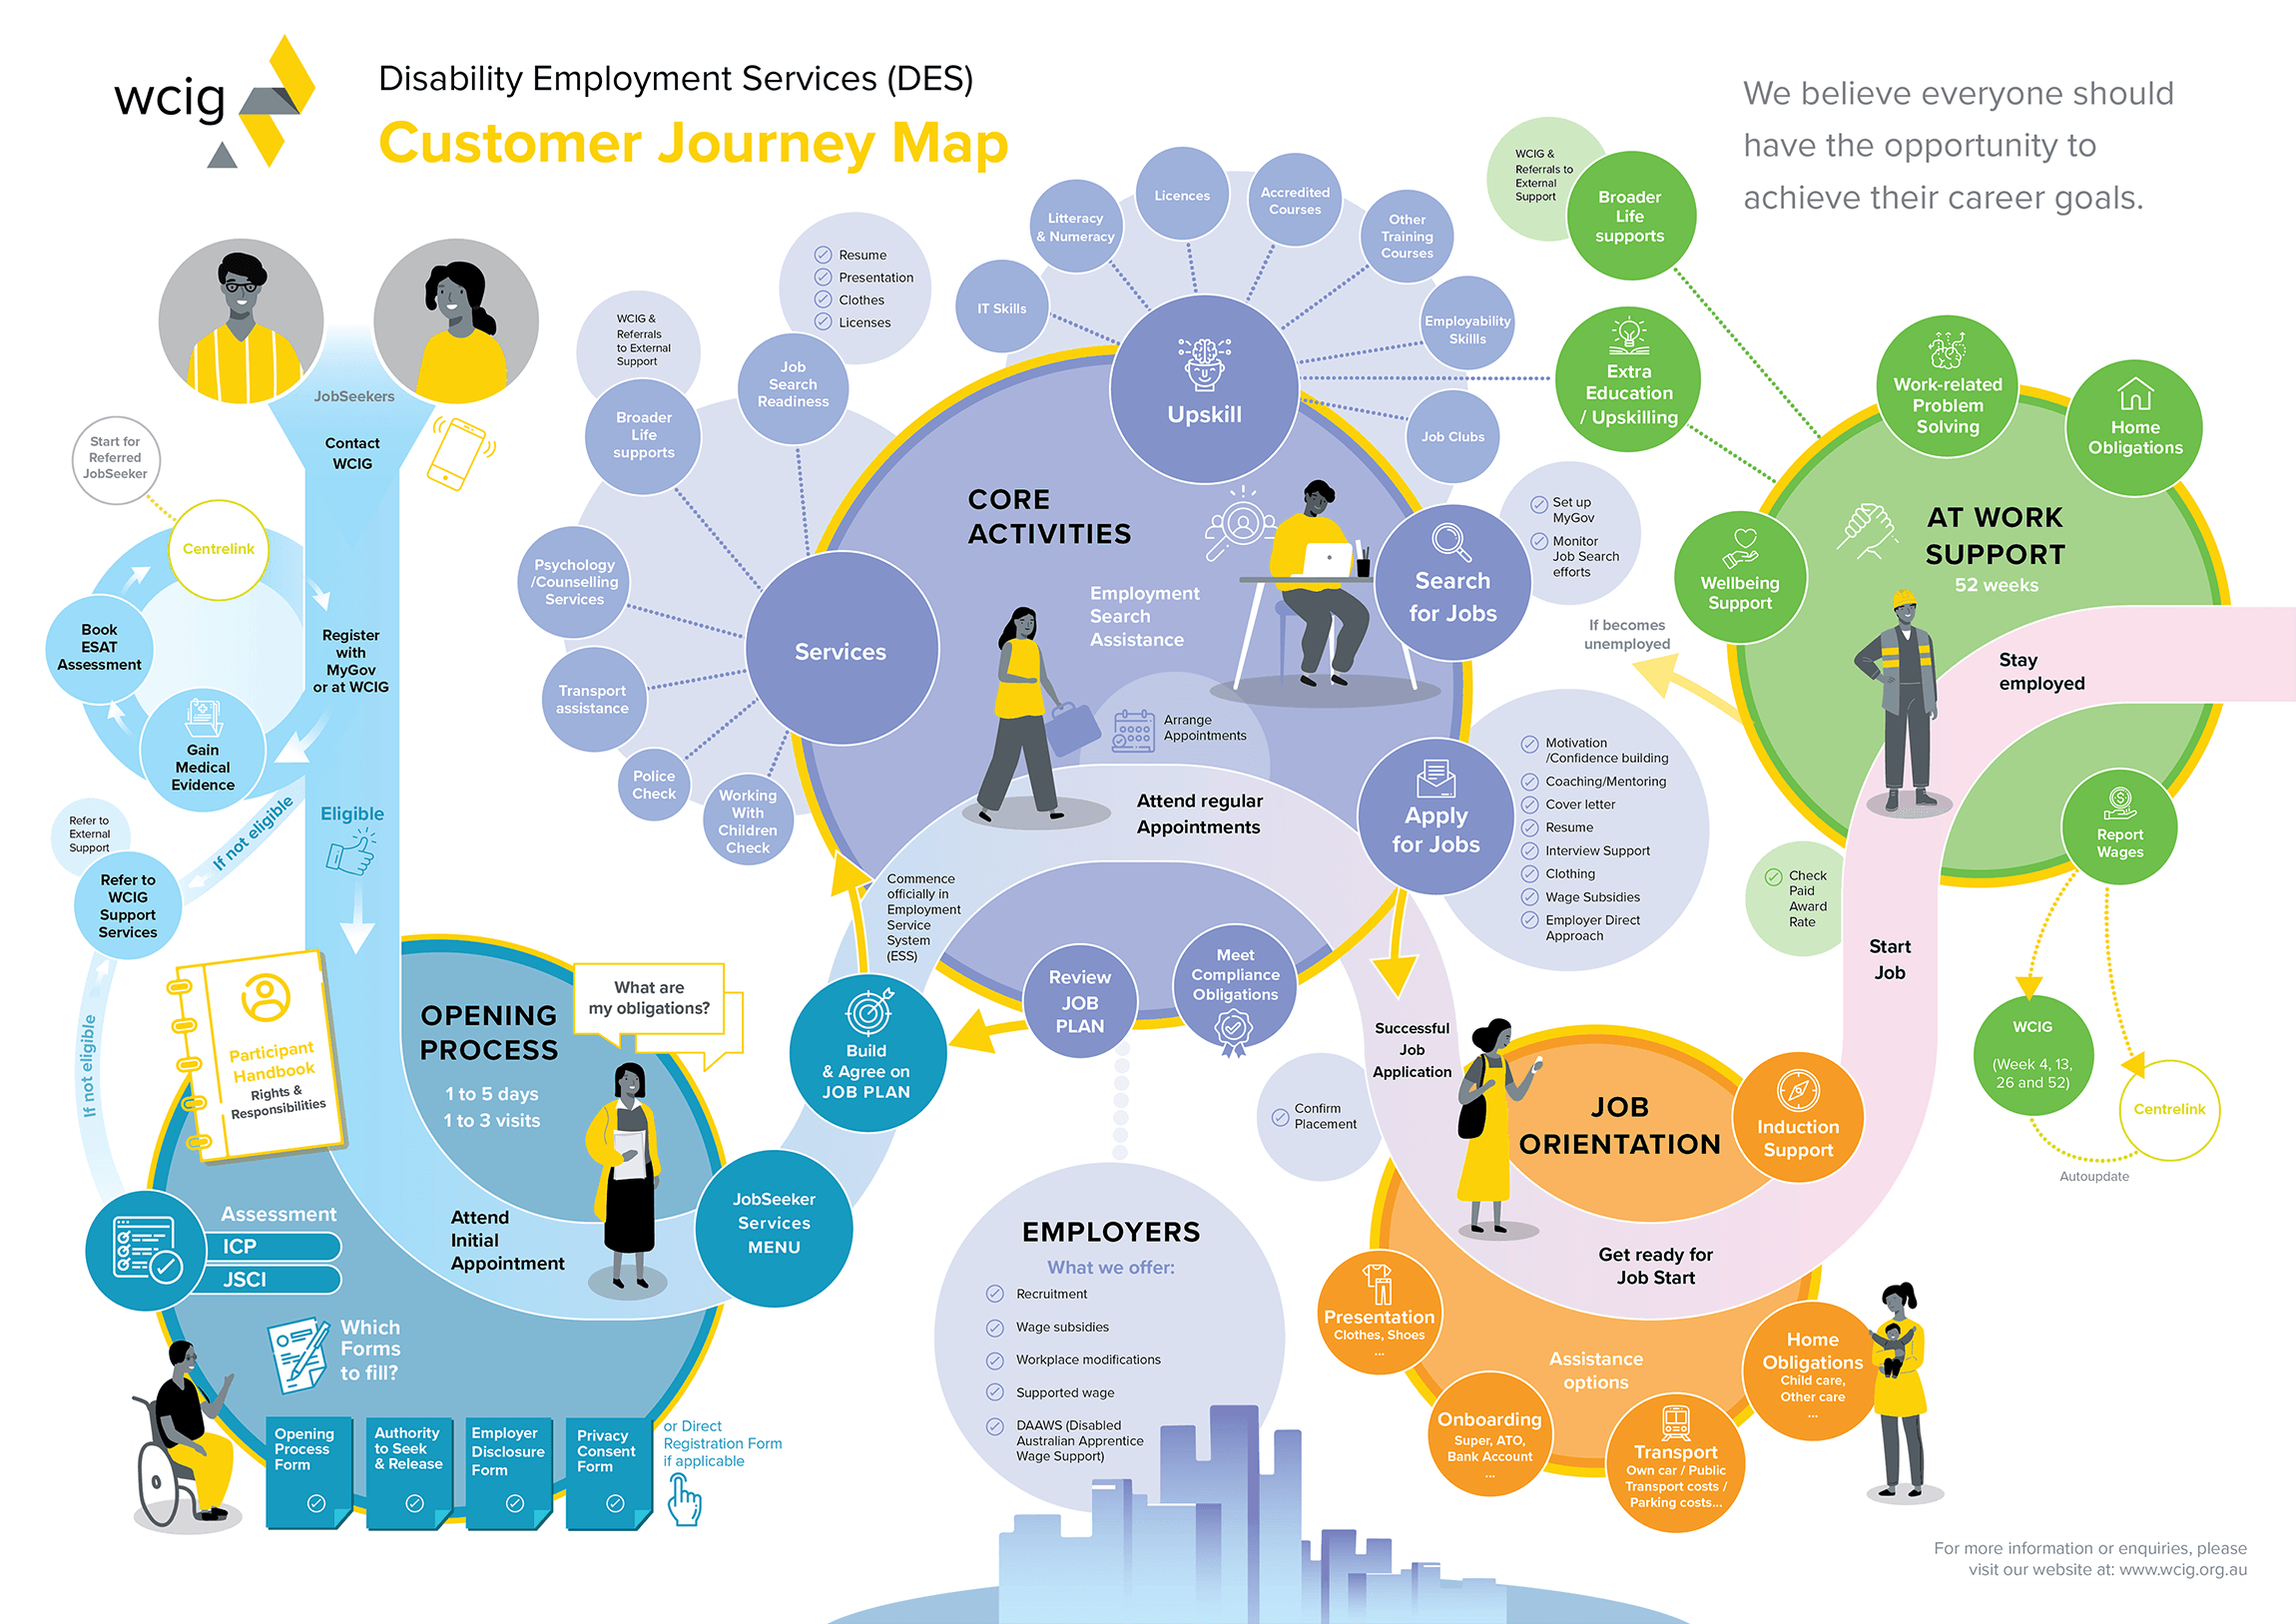 WCIG Customer Journey Map Infographic A3 Poster